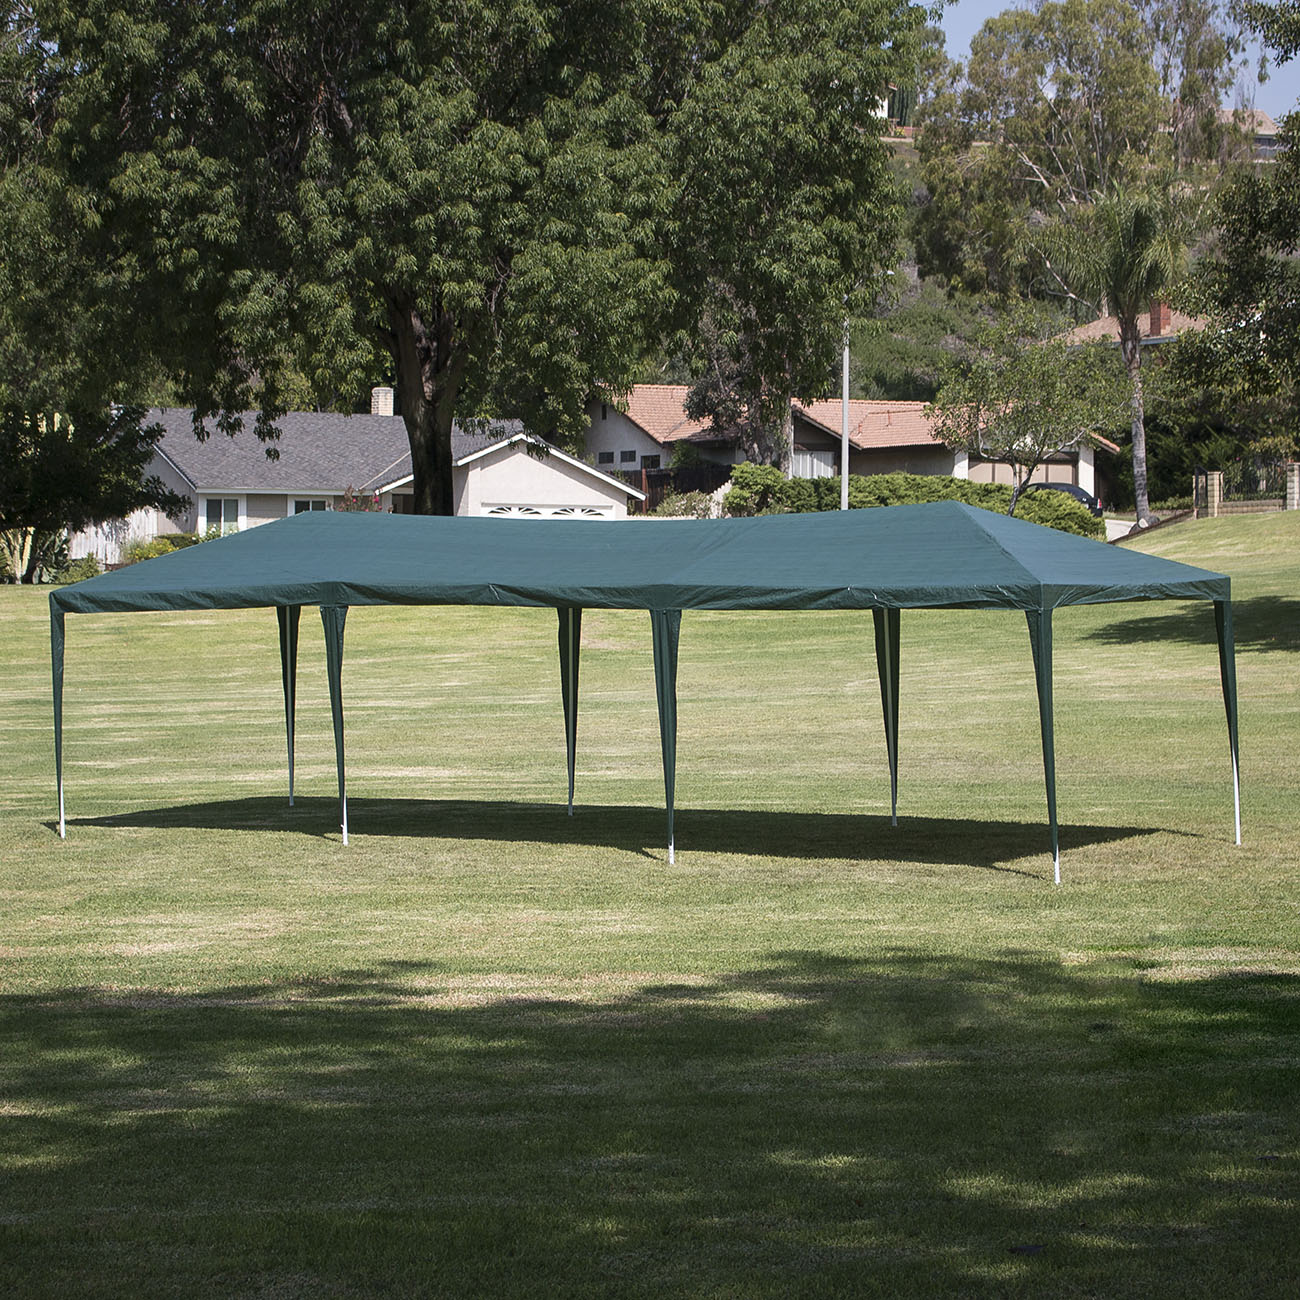 10 x 30 Dark Green Party Tent Canopy Gazebo 2 & 10 x 30 Dark Green Party Tent Canopy Gazebo -